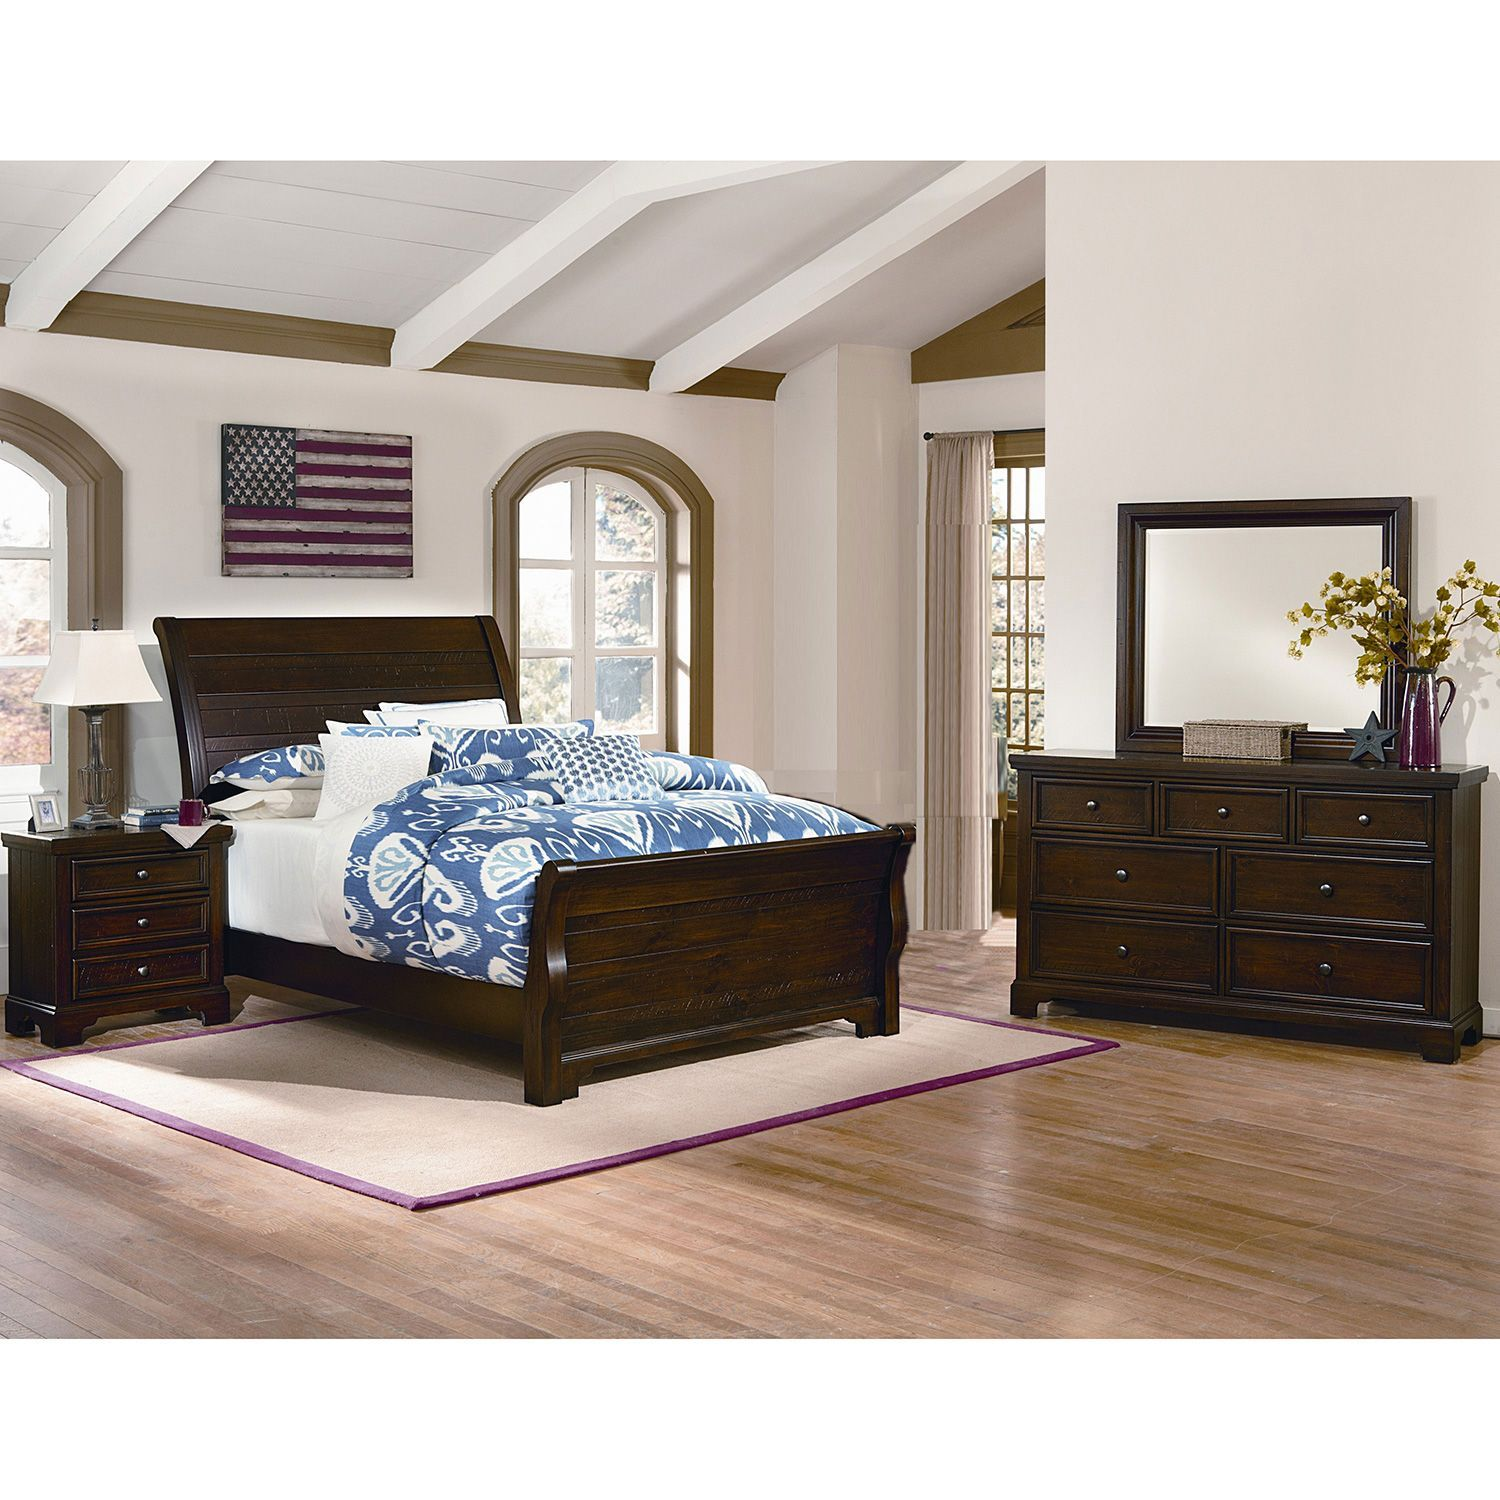 Brooklyn Sleigh Bedroom Set, Queen (4 pc. set) | Bedroom ...